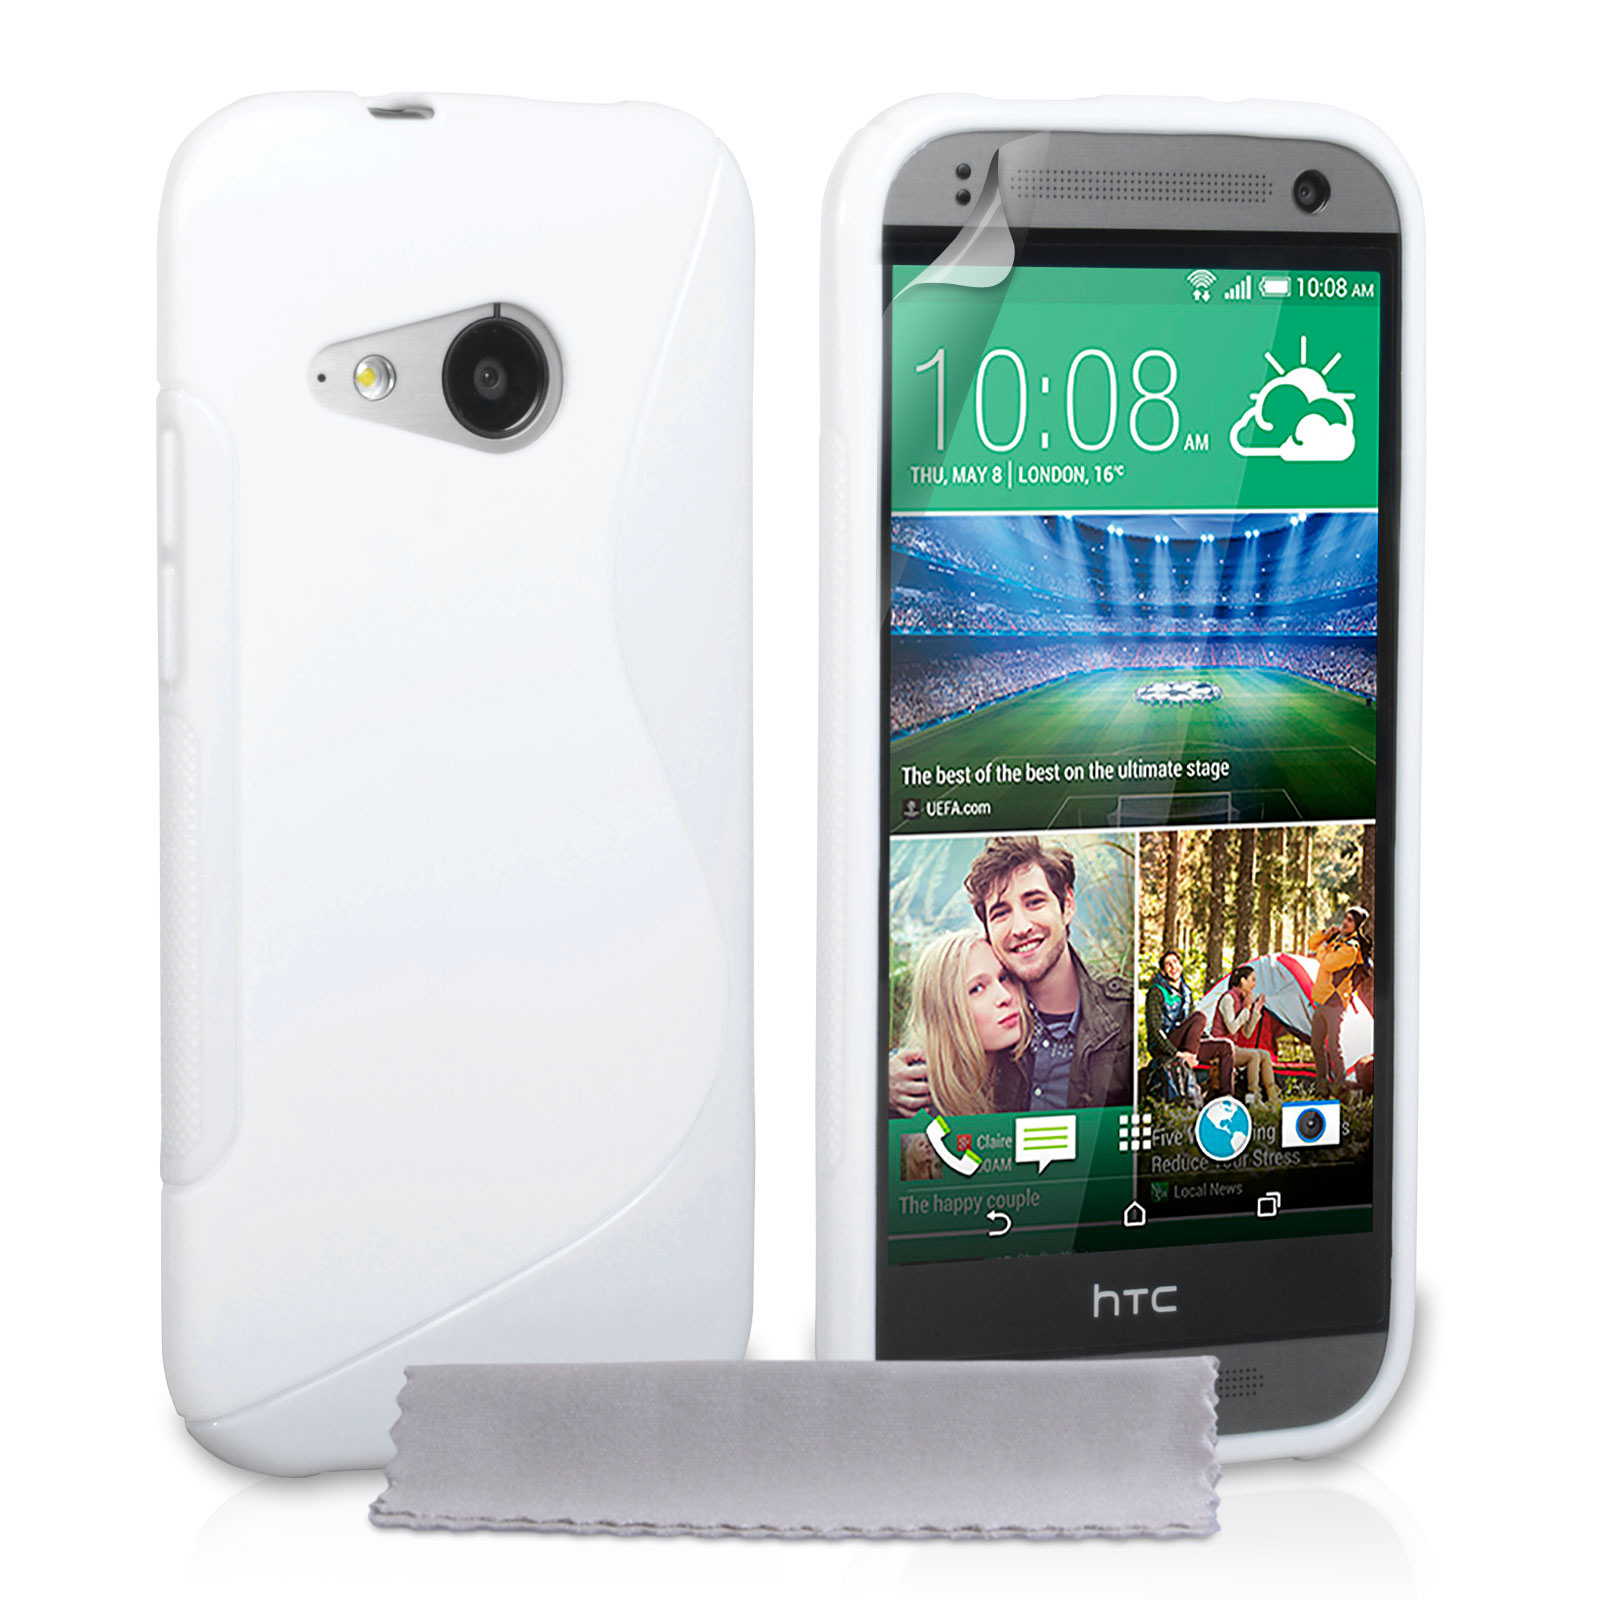 Caseflex HTC One Mini 2 Silicone Gel S-Line Case - White